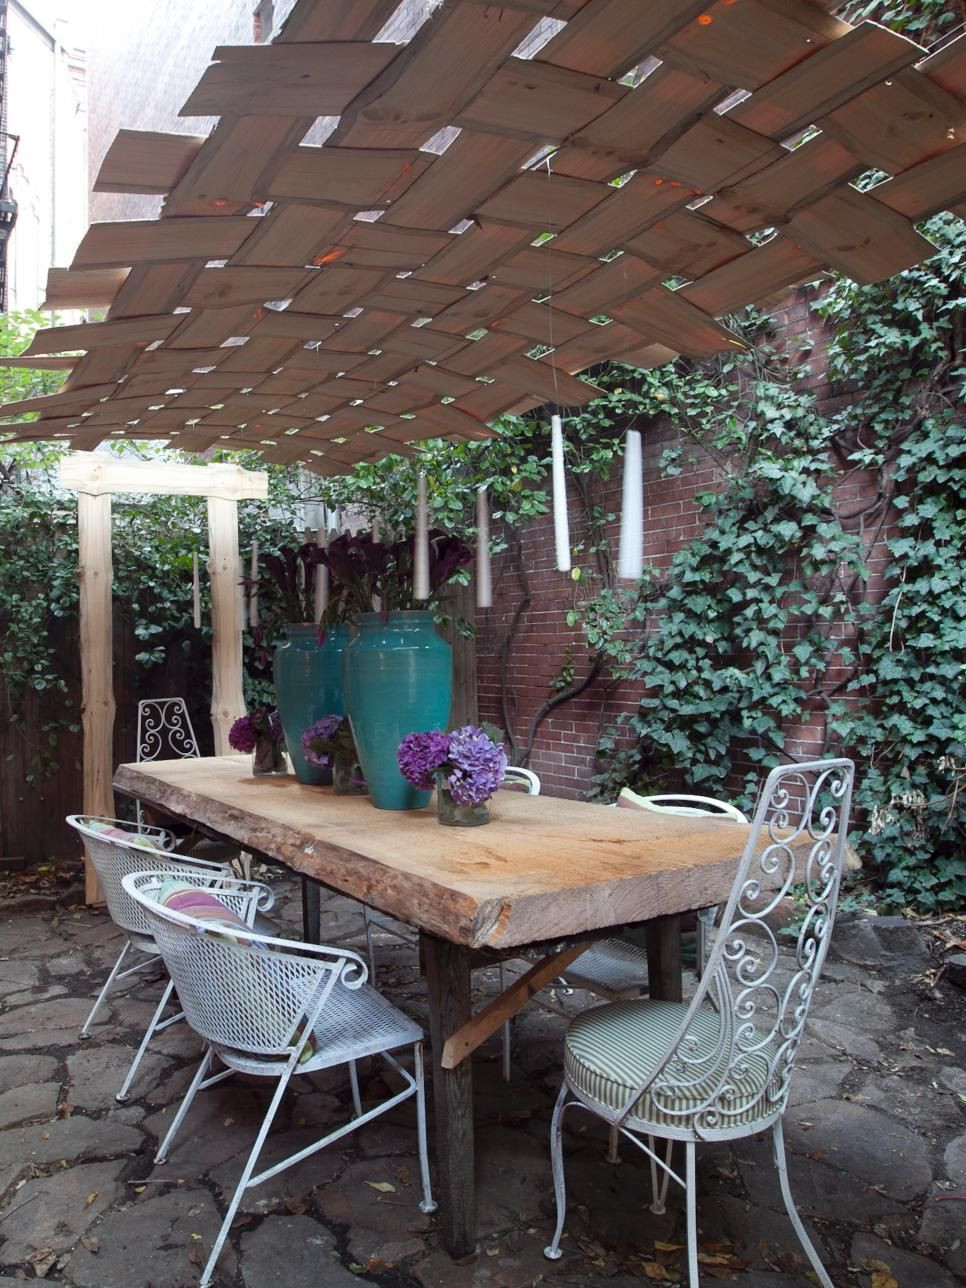 Best ideas about DIY Outdoor Patios . Save or Pin 10 Creative DIY Outdoor Shady Space Ideas Now.